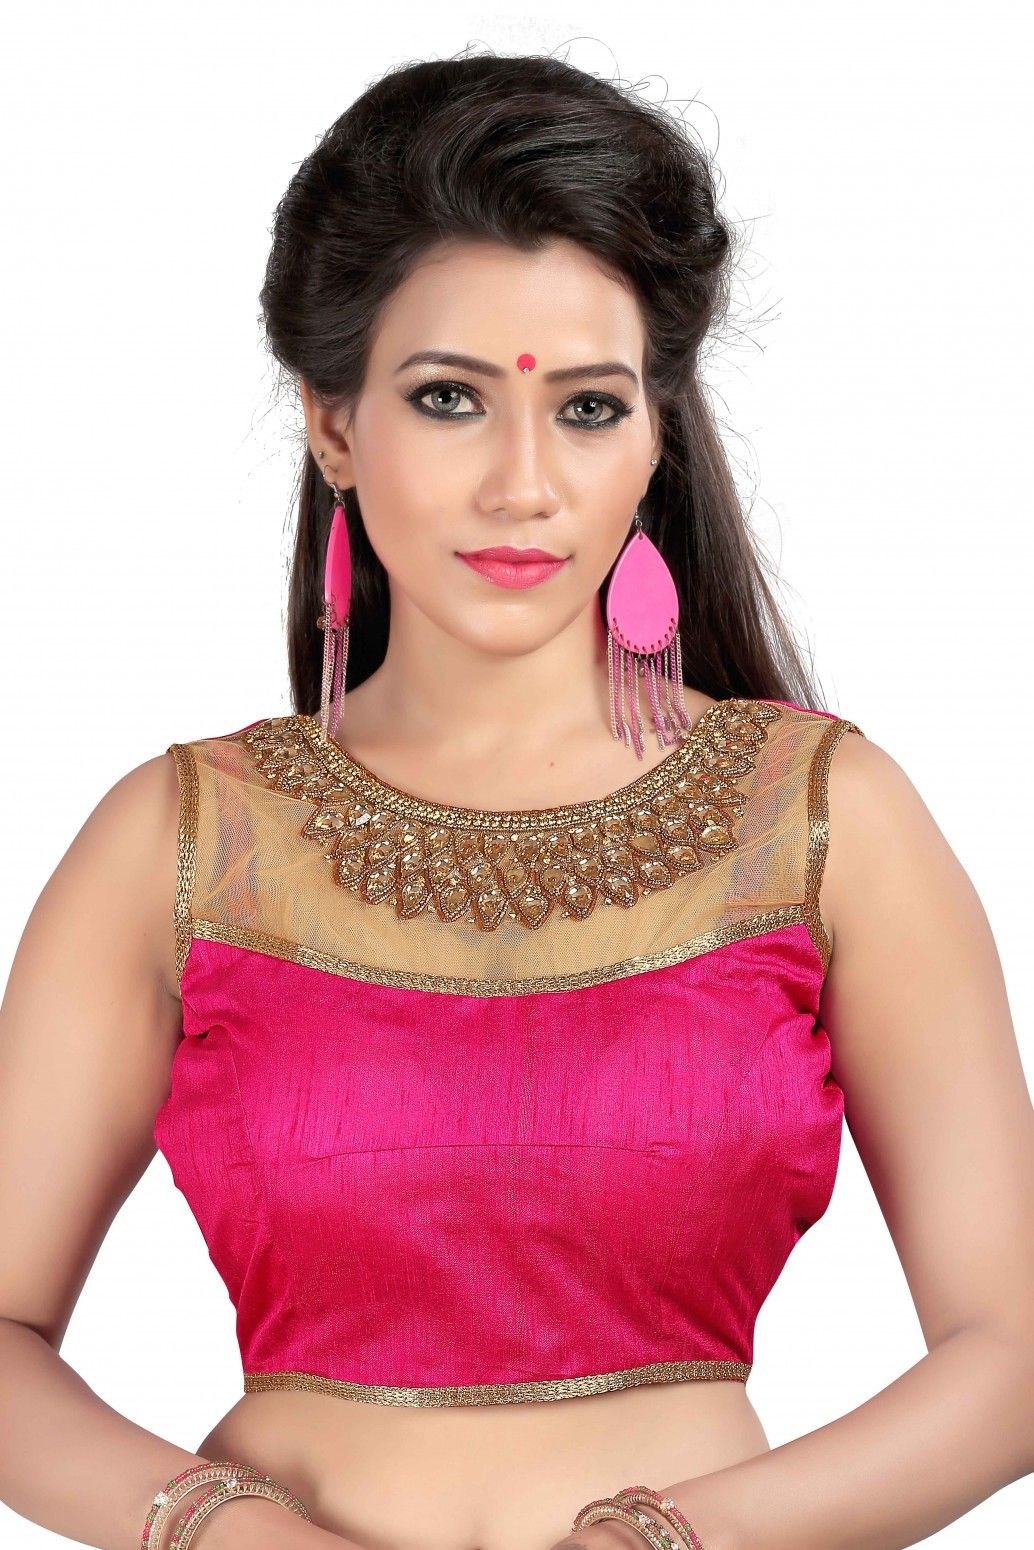 d127c181e1 Buy kuvarba fashion pink banglori silk blouses online at low prices in  india on winsant also